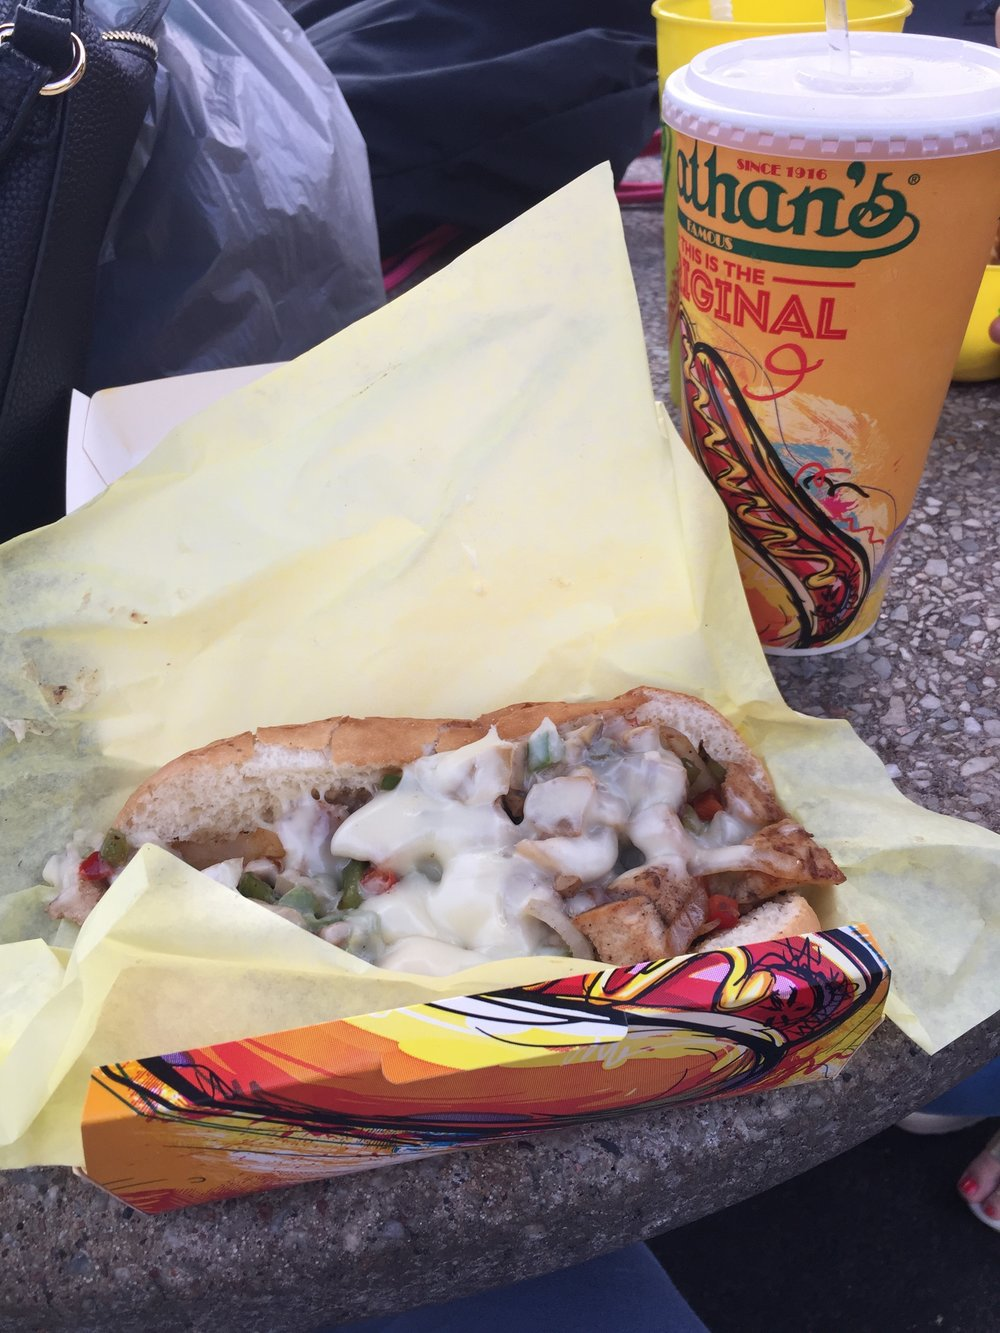 Aug 31– Kaitlin and I took a trip to Coney Island for a free showing of Beauty and the Beast on the beach! We stopped for dinner at Nathan's on the way. They're known for some rad hot dogs. I opted for the chicken philly and some lemonade.  yummmm .